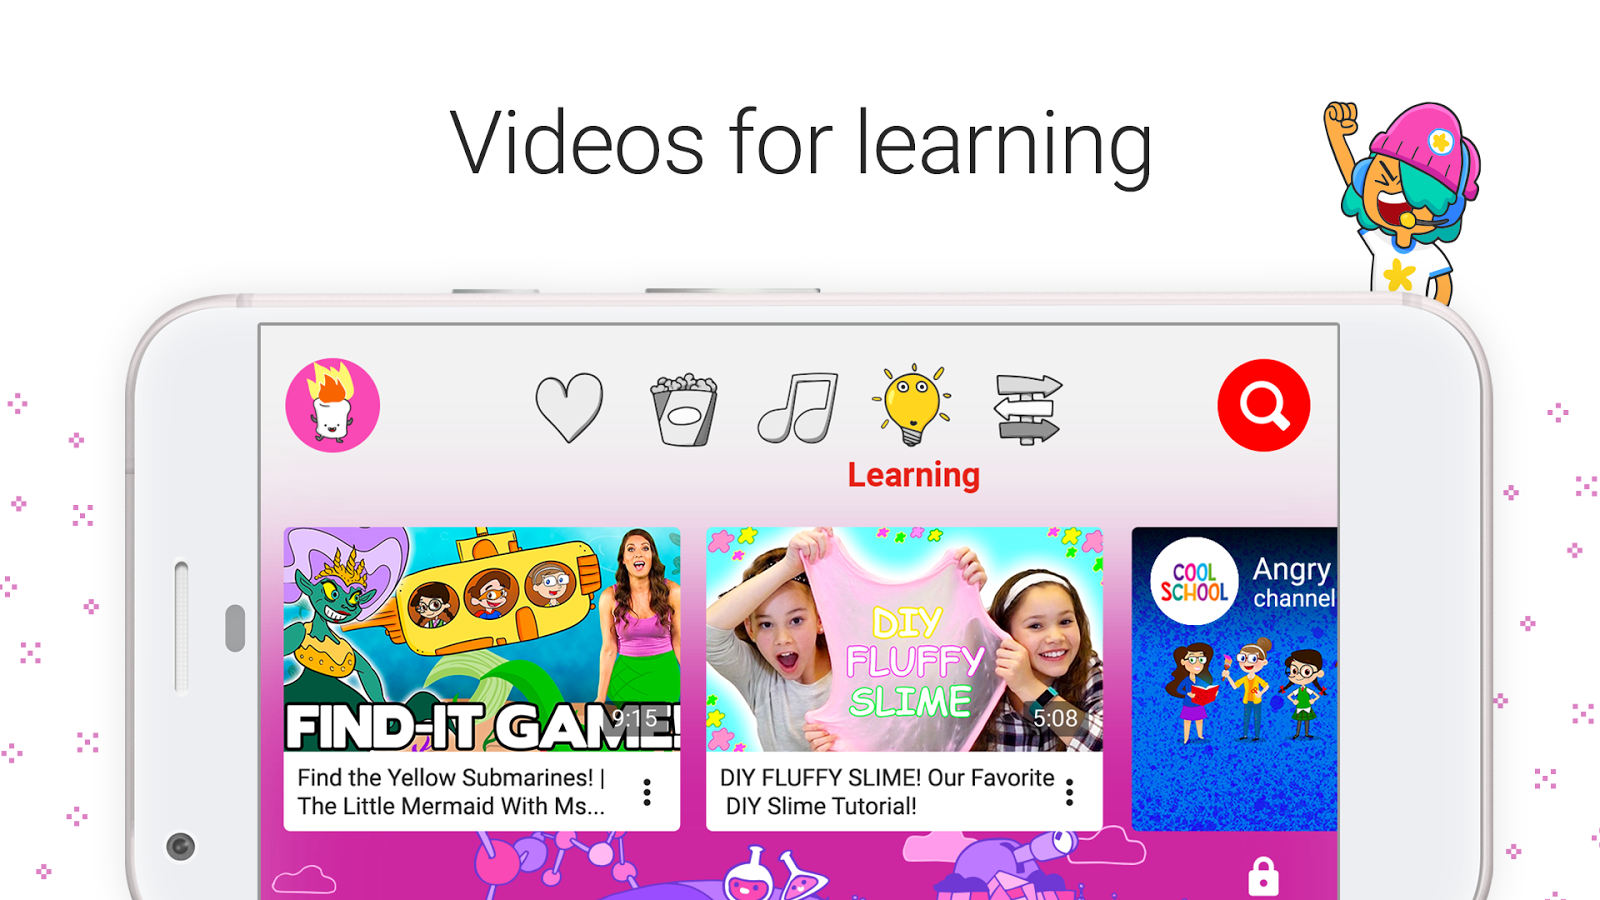 Youtube Kids Apk Download - Android underholdningsapps-2295